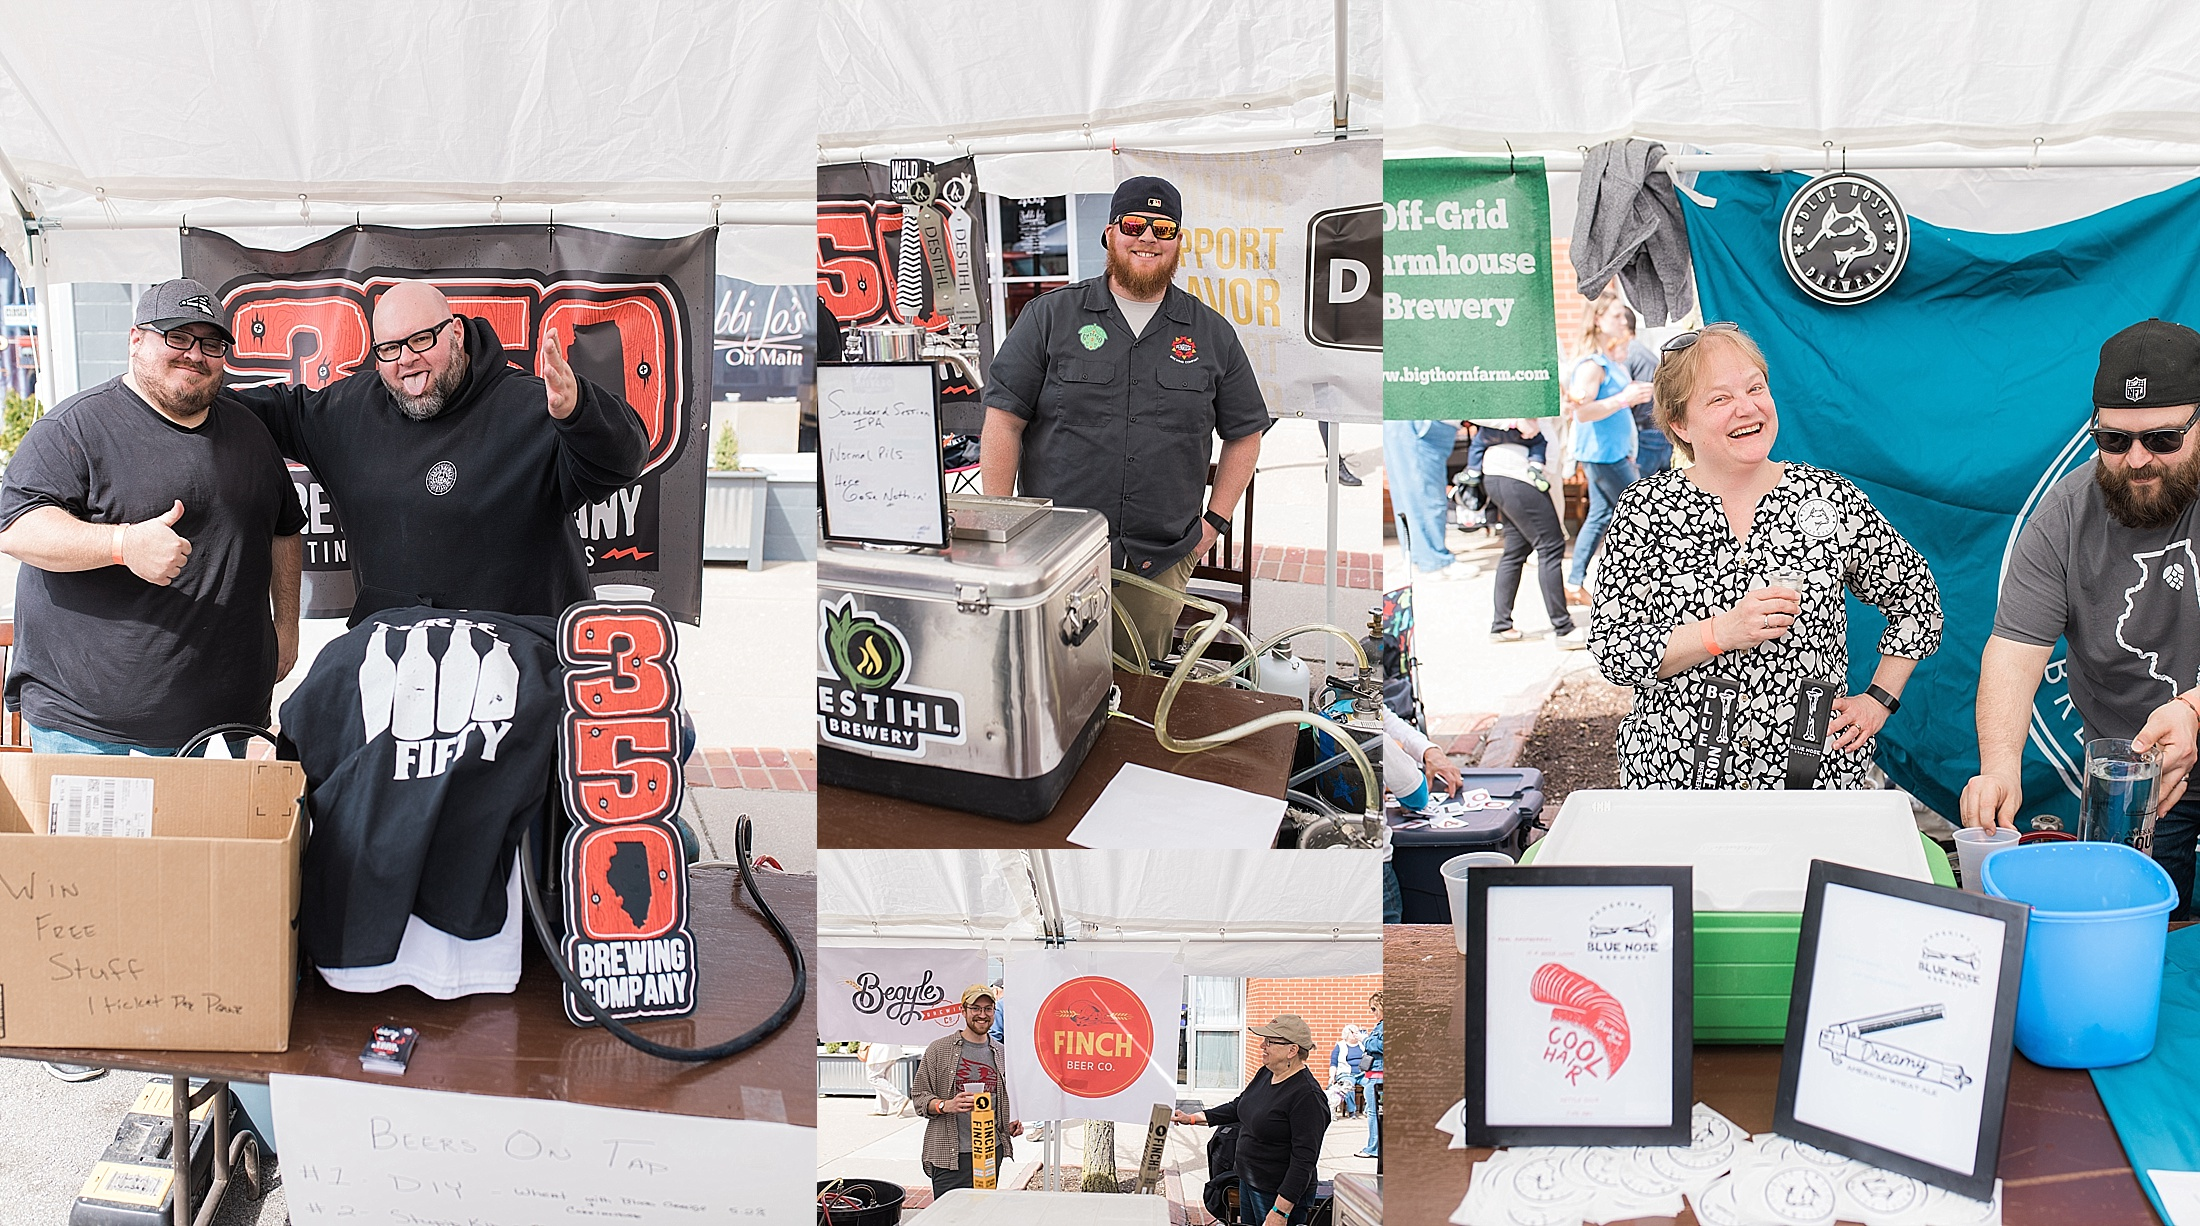 mahomet-illinois-spring-craft-beer-festival-jtwalkers-champaign-county-350-destihl-finch-blue-nose-brewing-company_2029.jpg